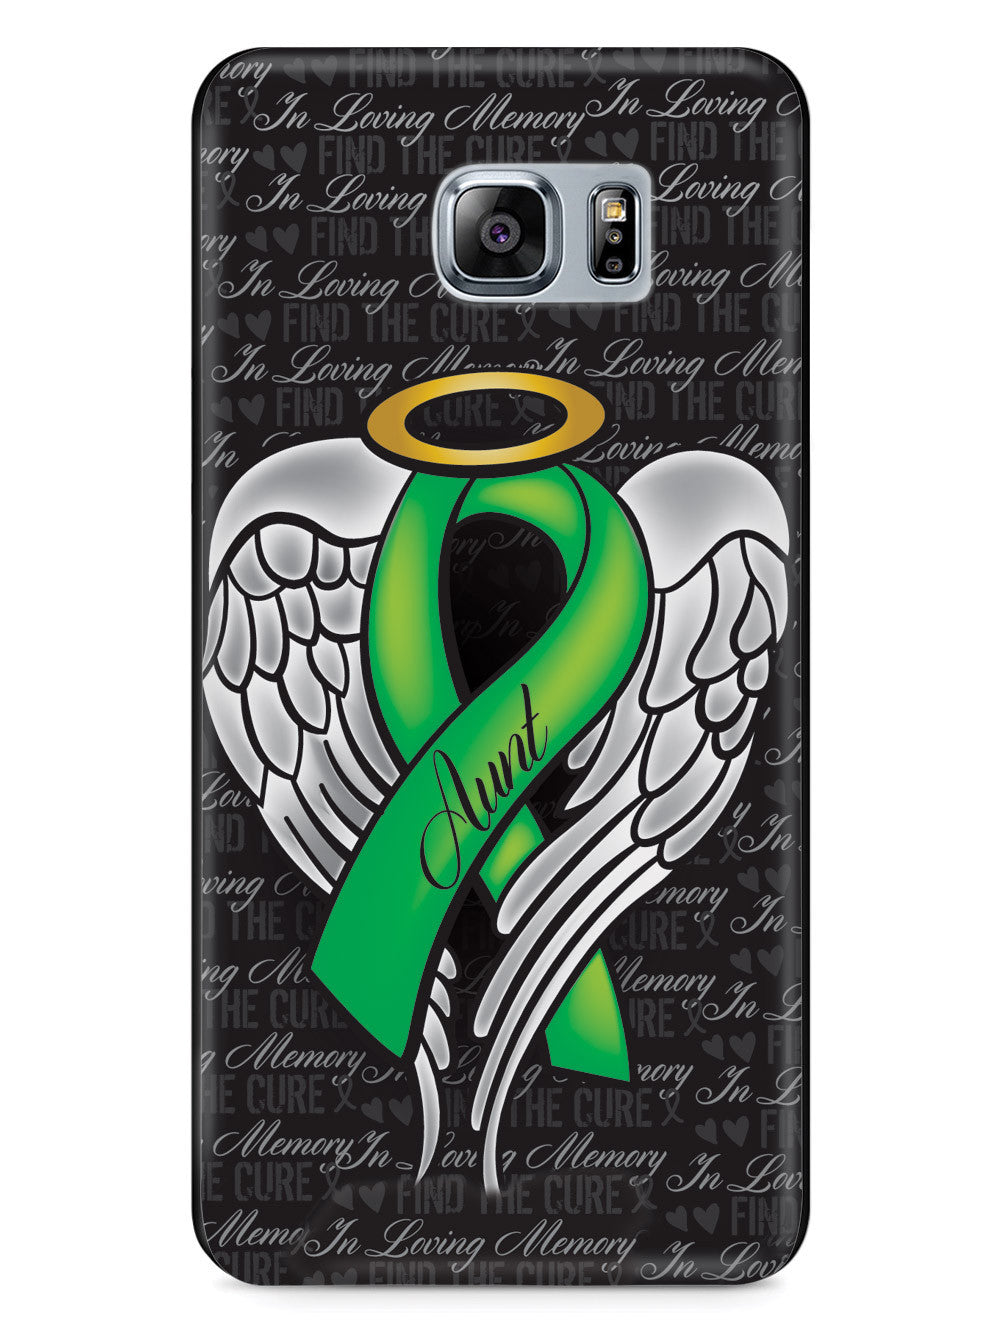 In Loving Memory of My Aunt - Green Ribbon Case